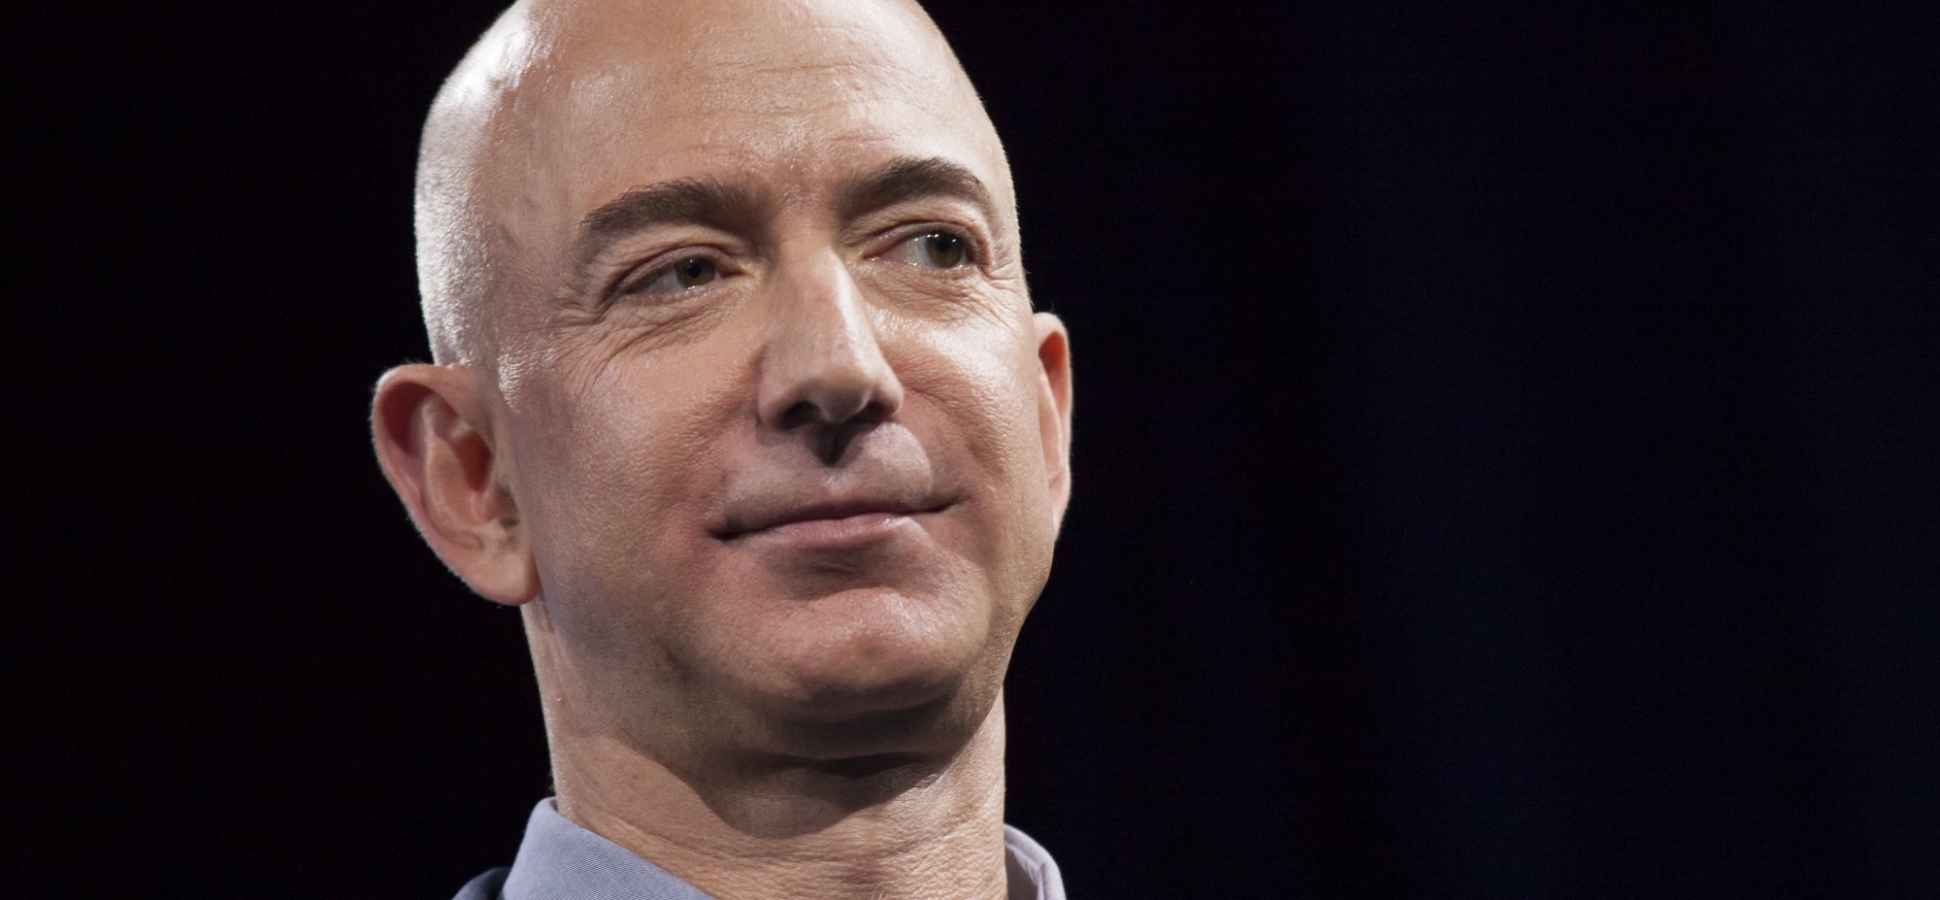 Jeff Bezos Made $29.5 Billion This Year, More Than the GDP of These 67 Countries